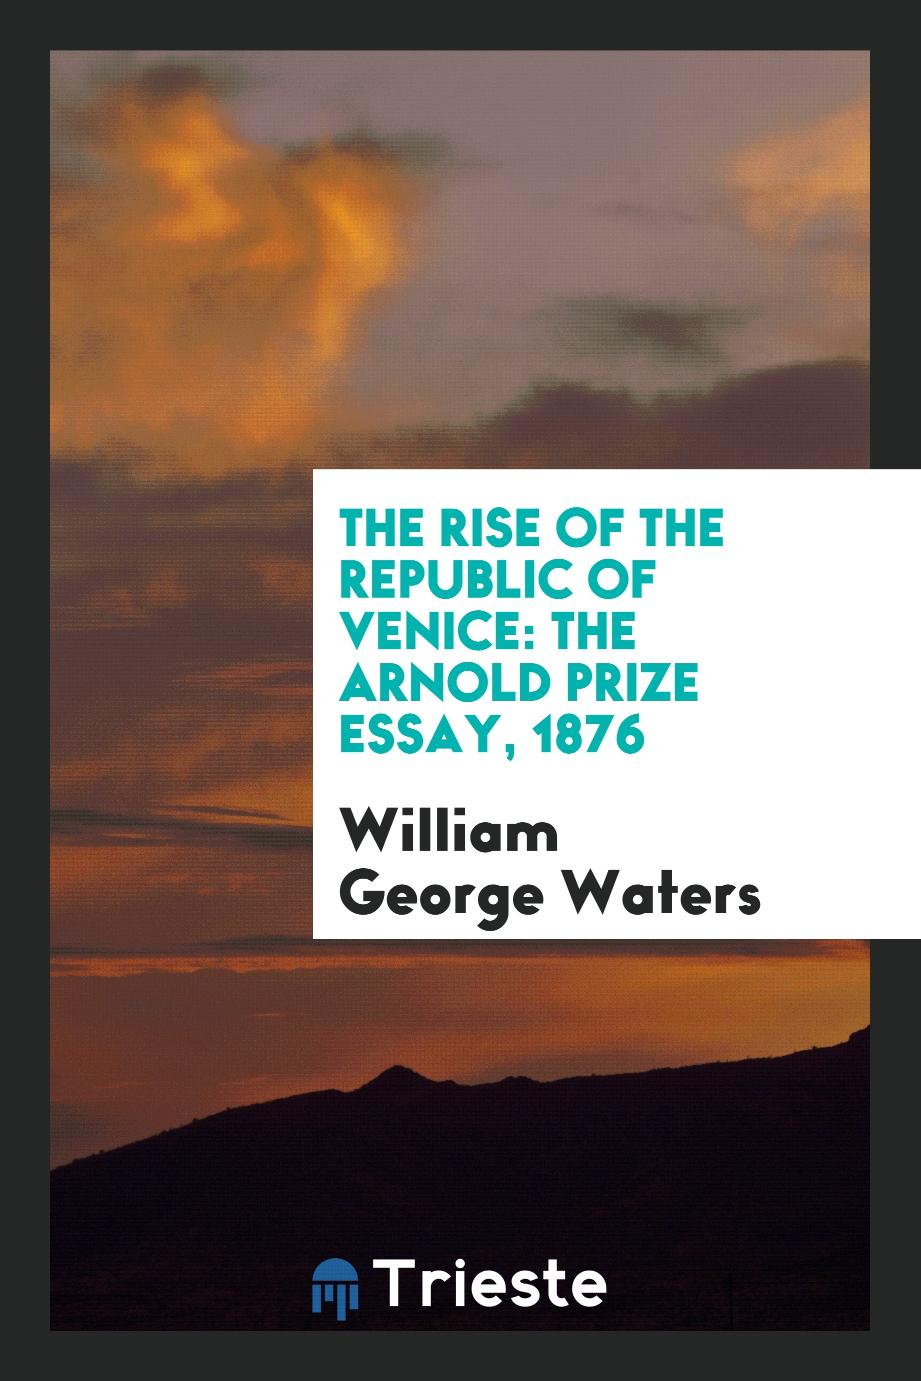 The Rise of the Republic of Venice: The Arnold Prize Essay, 1876